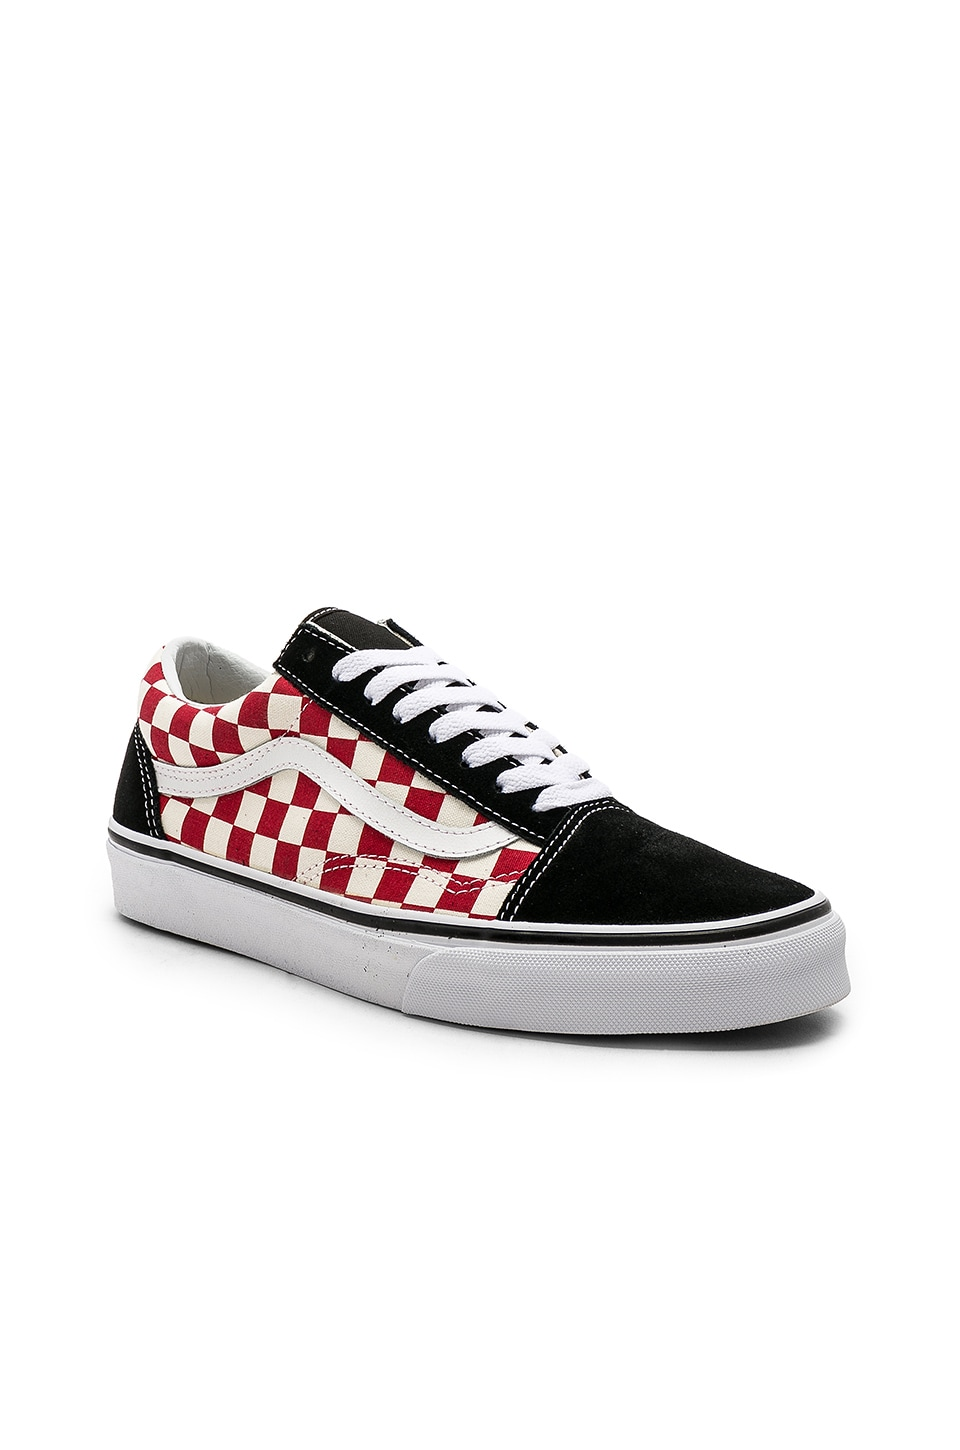 8a13bfc6c00 checkerboard vans red old skool nz collection